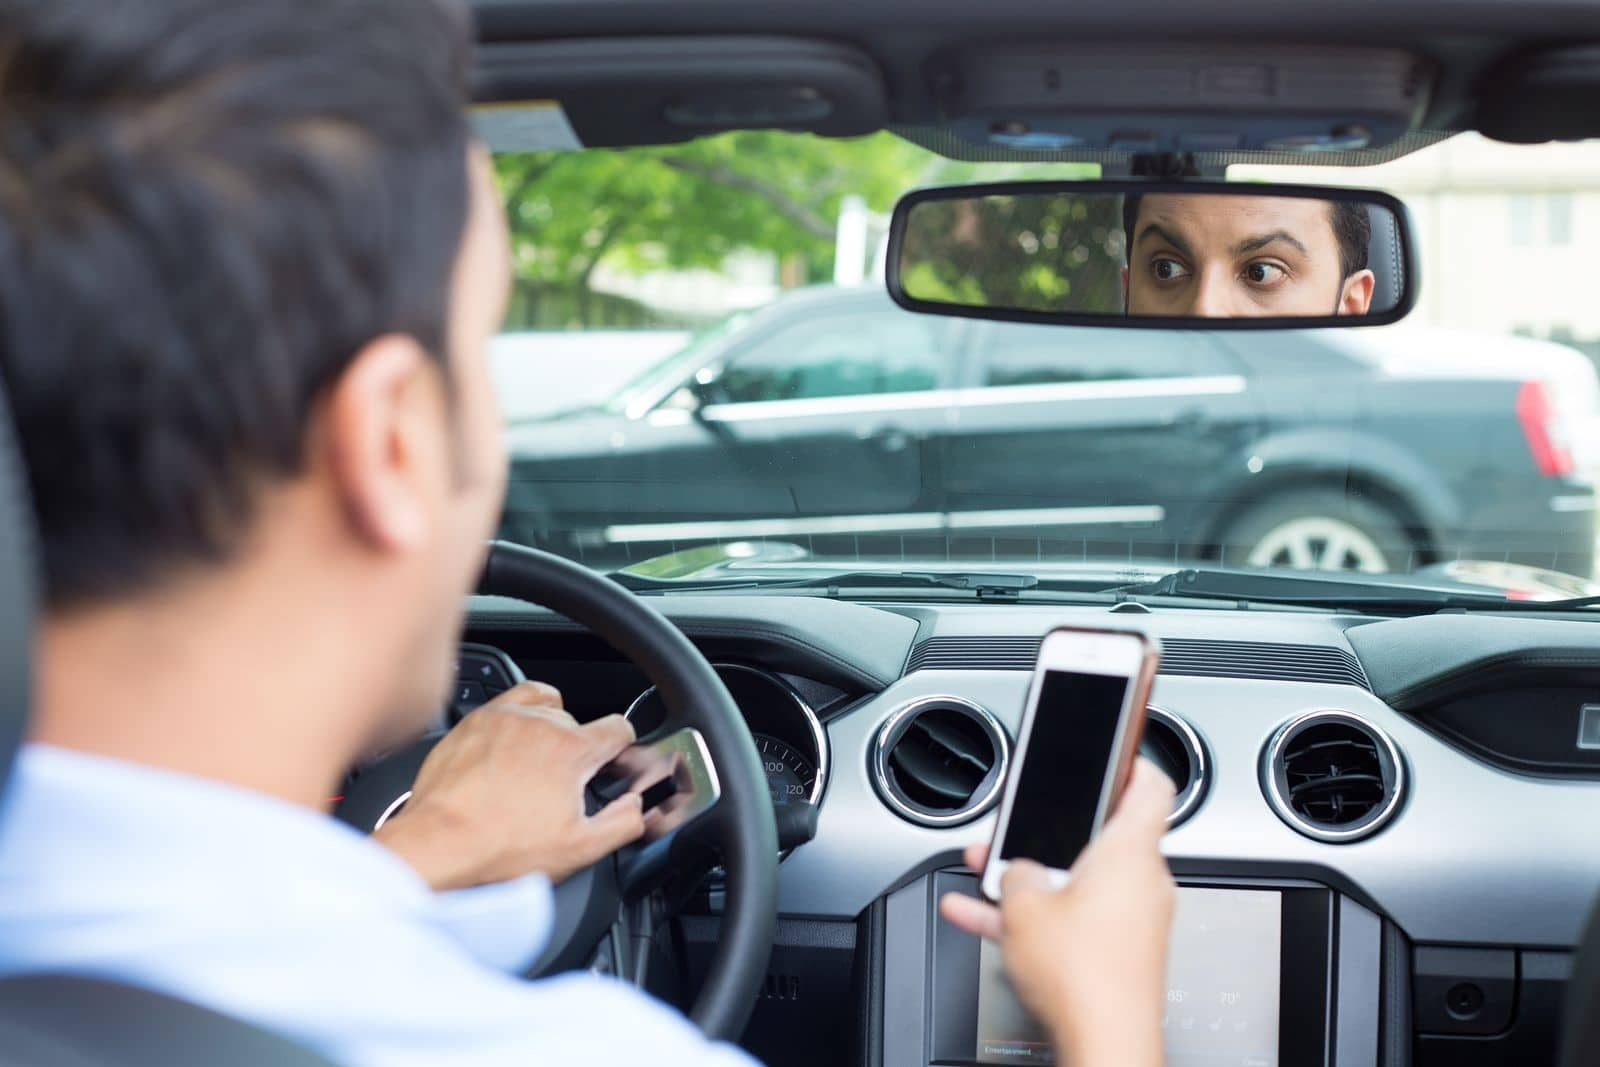 Many States have Already Banned the Use of Mobile Phones While Driving